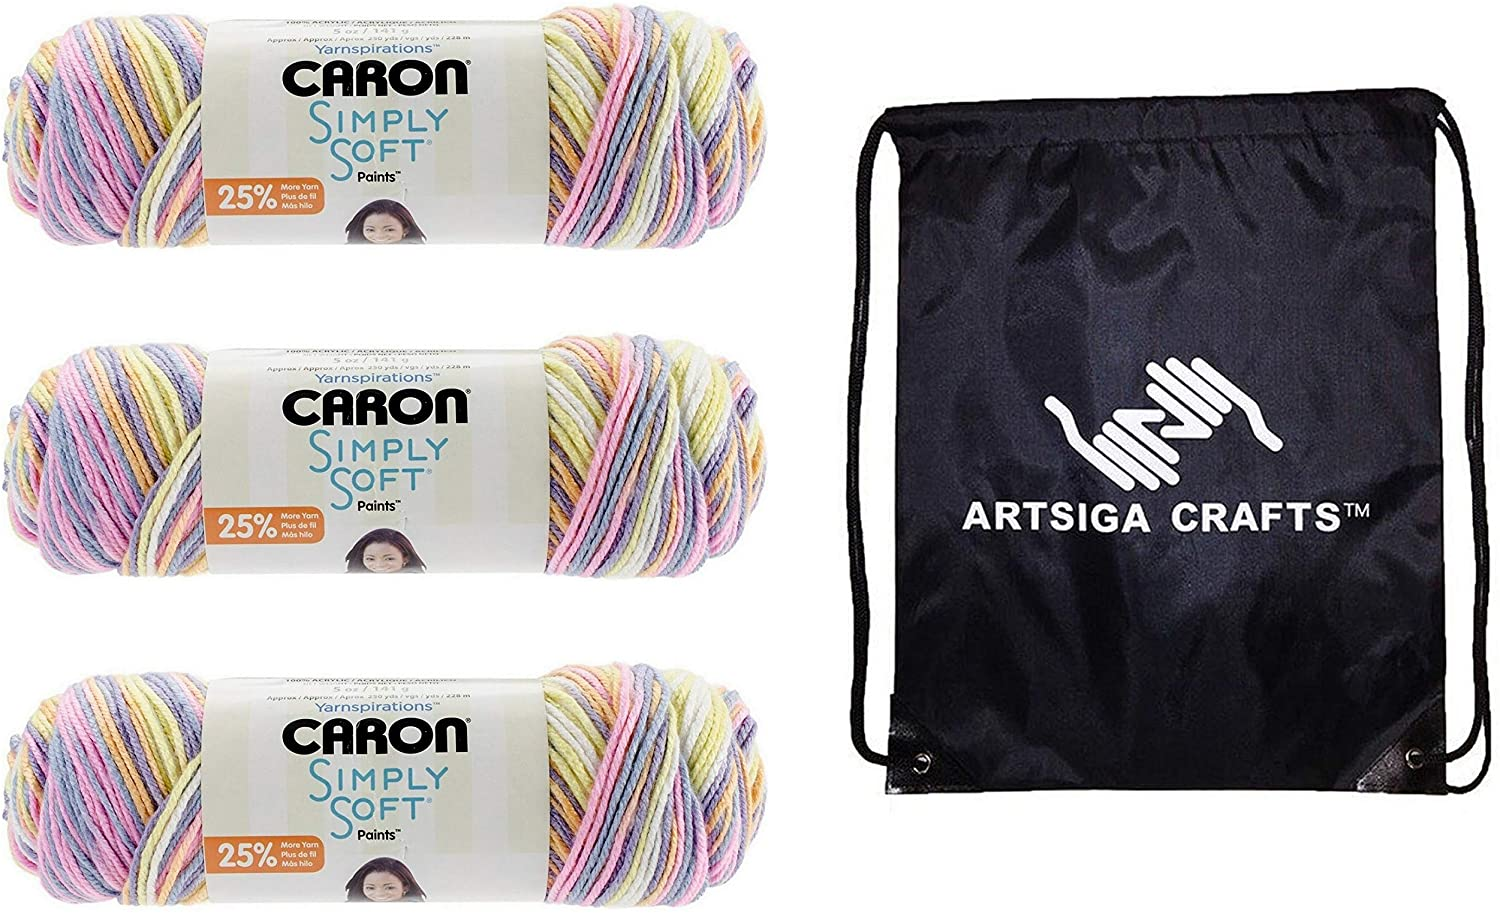 Caron Knitting Yarn Simply Soft Paints Baby Brights 3-Skein Factory Pack (Same Dyelot) 294021-21015 Bundle with 1 Artsiga Crafts Project Bag